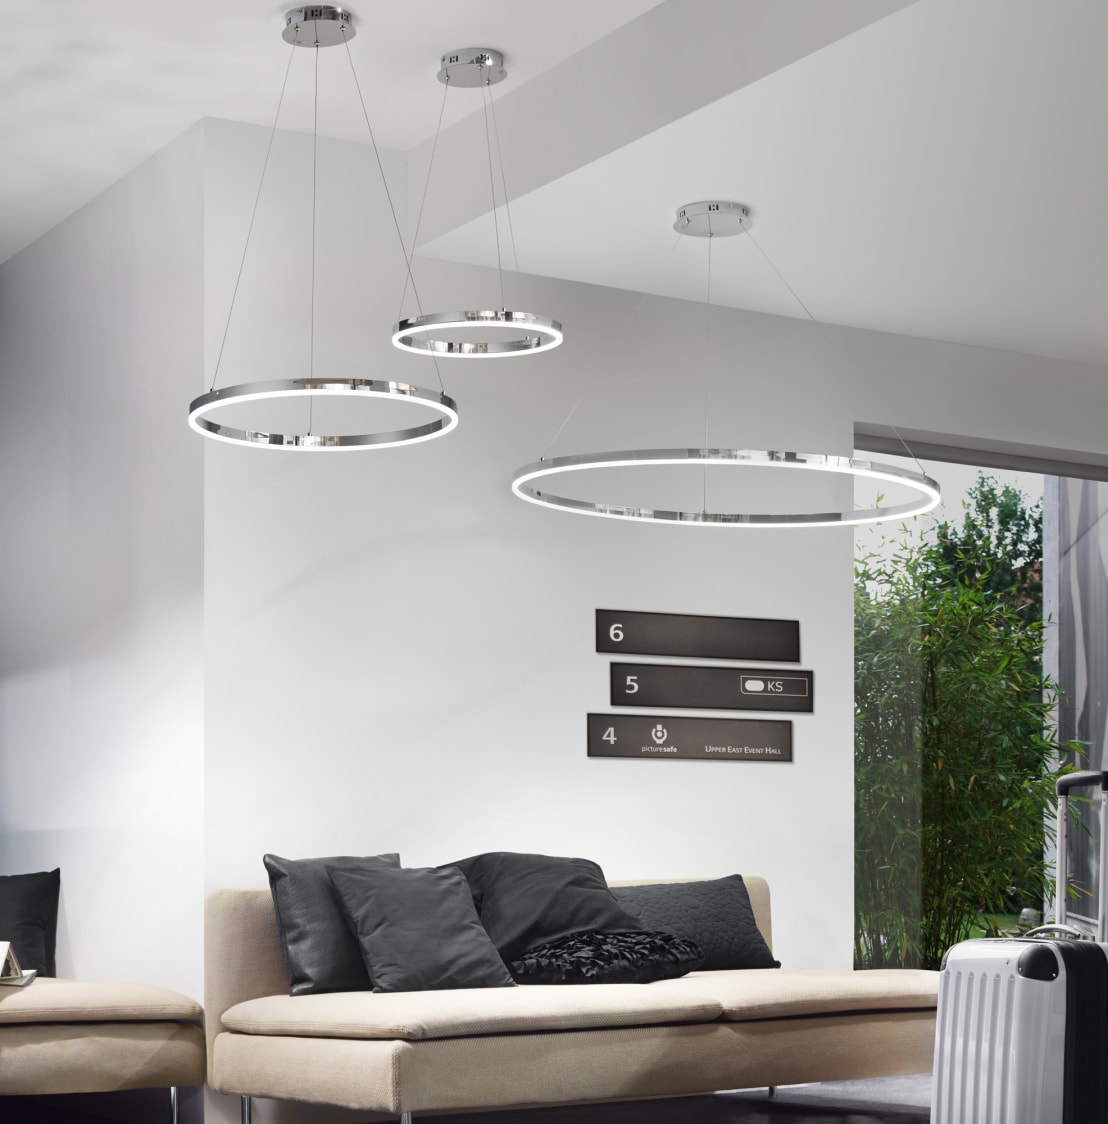 s luce ring von licht design skapetze gmbh co kg homify. Black Bedroom Furniture Sets. Home Design Ideas